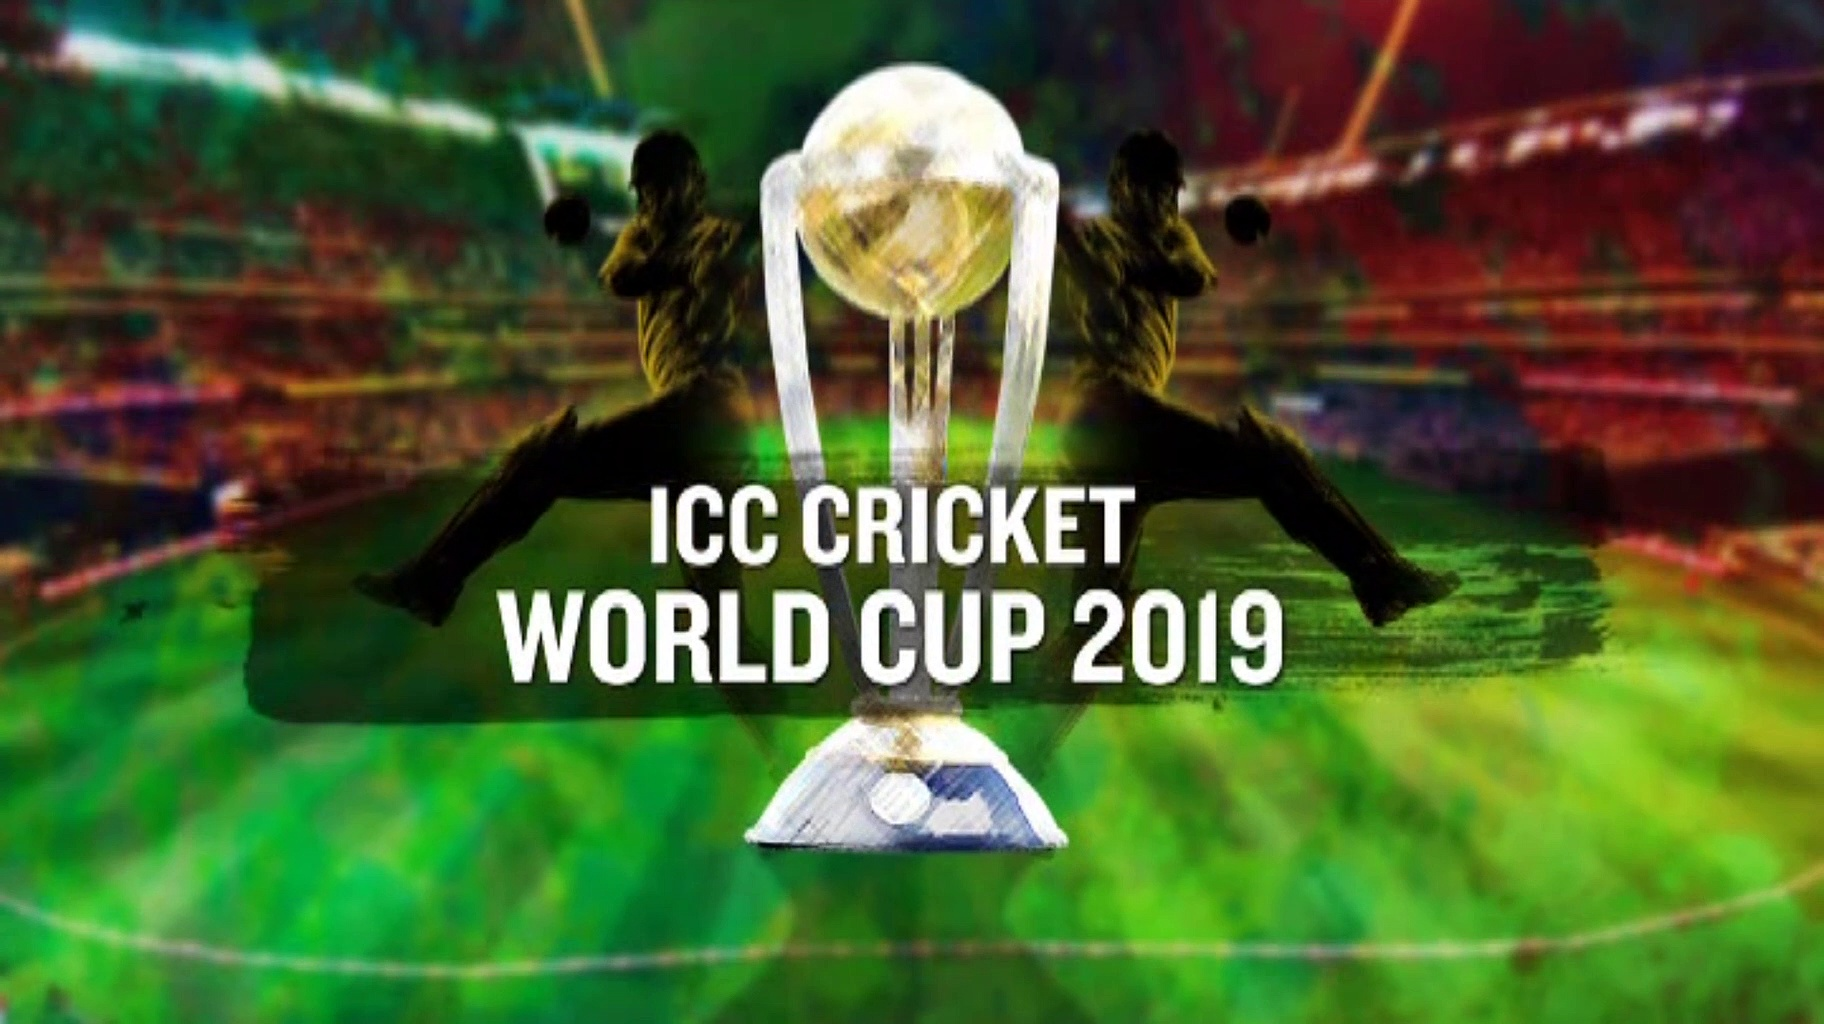 World Cup 2019 Feature